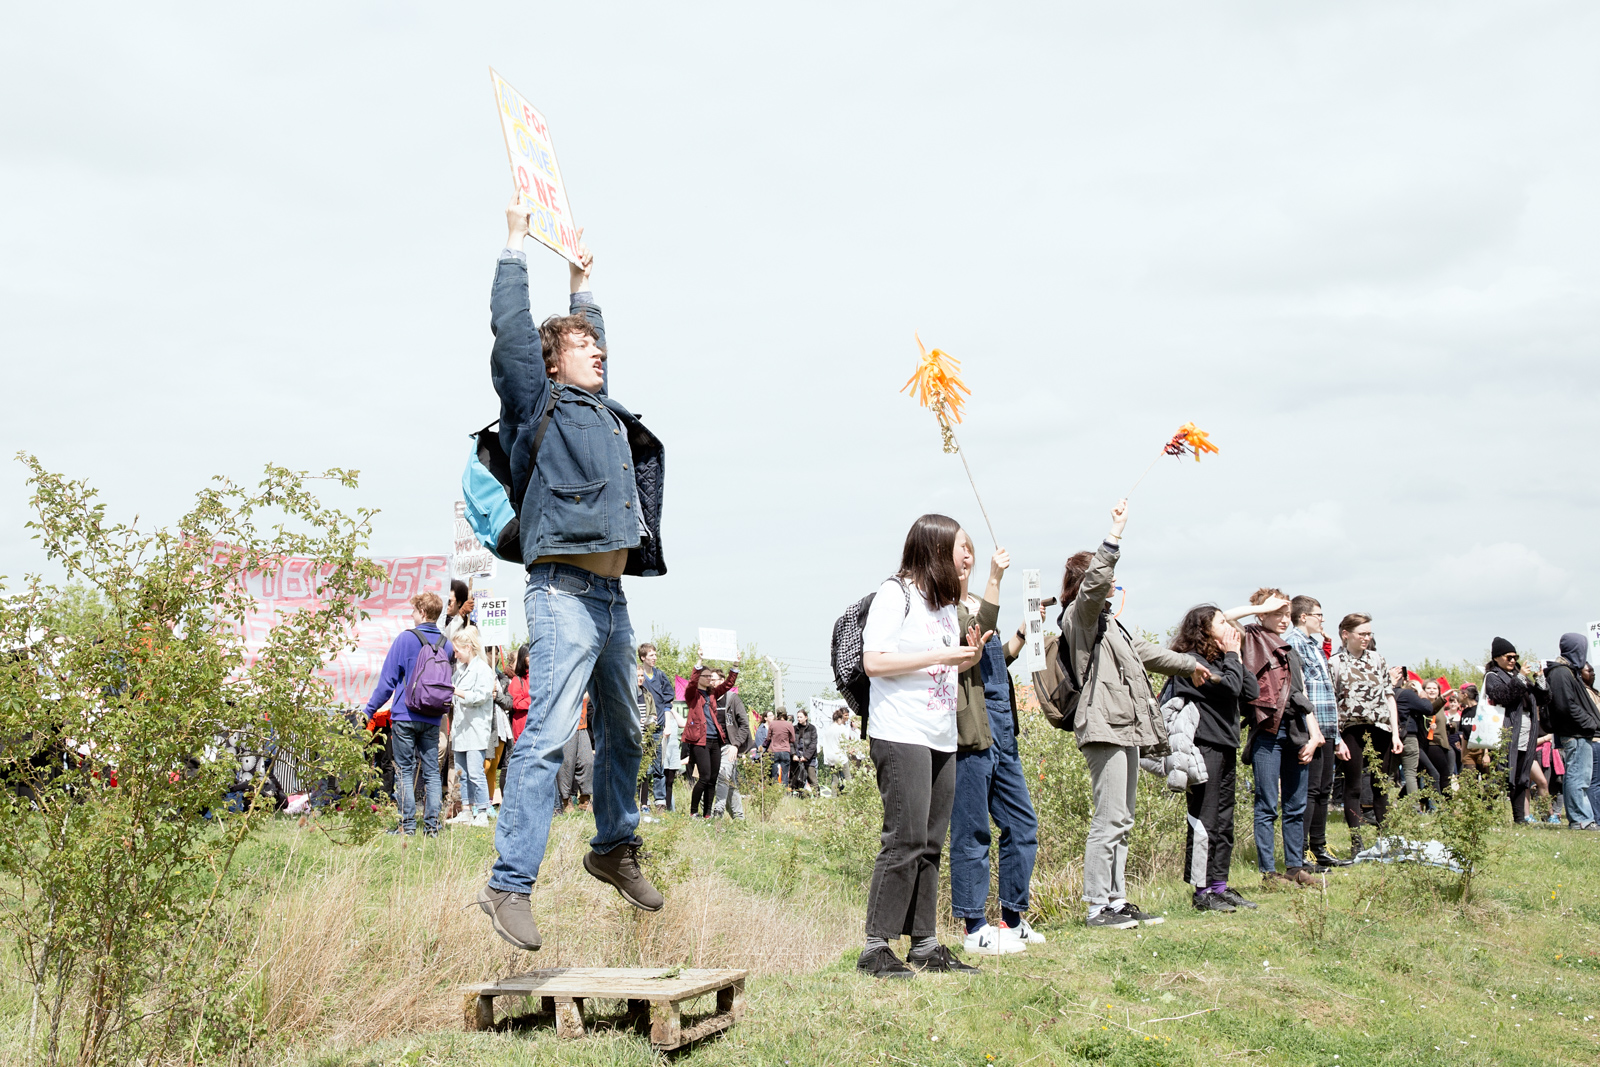 Yarlswood Demo-May 2017-Photo Bex Wade-10.jpg